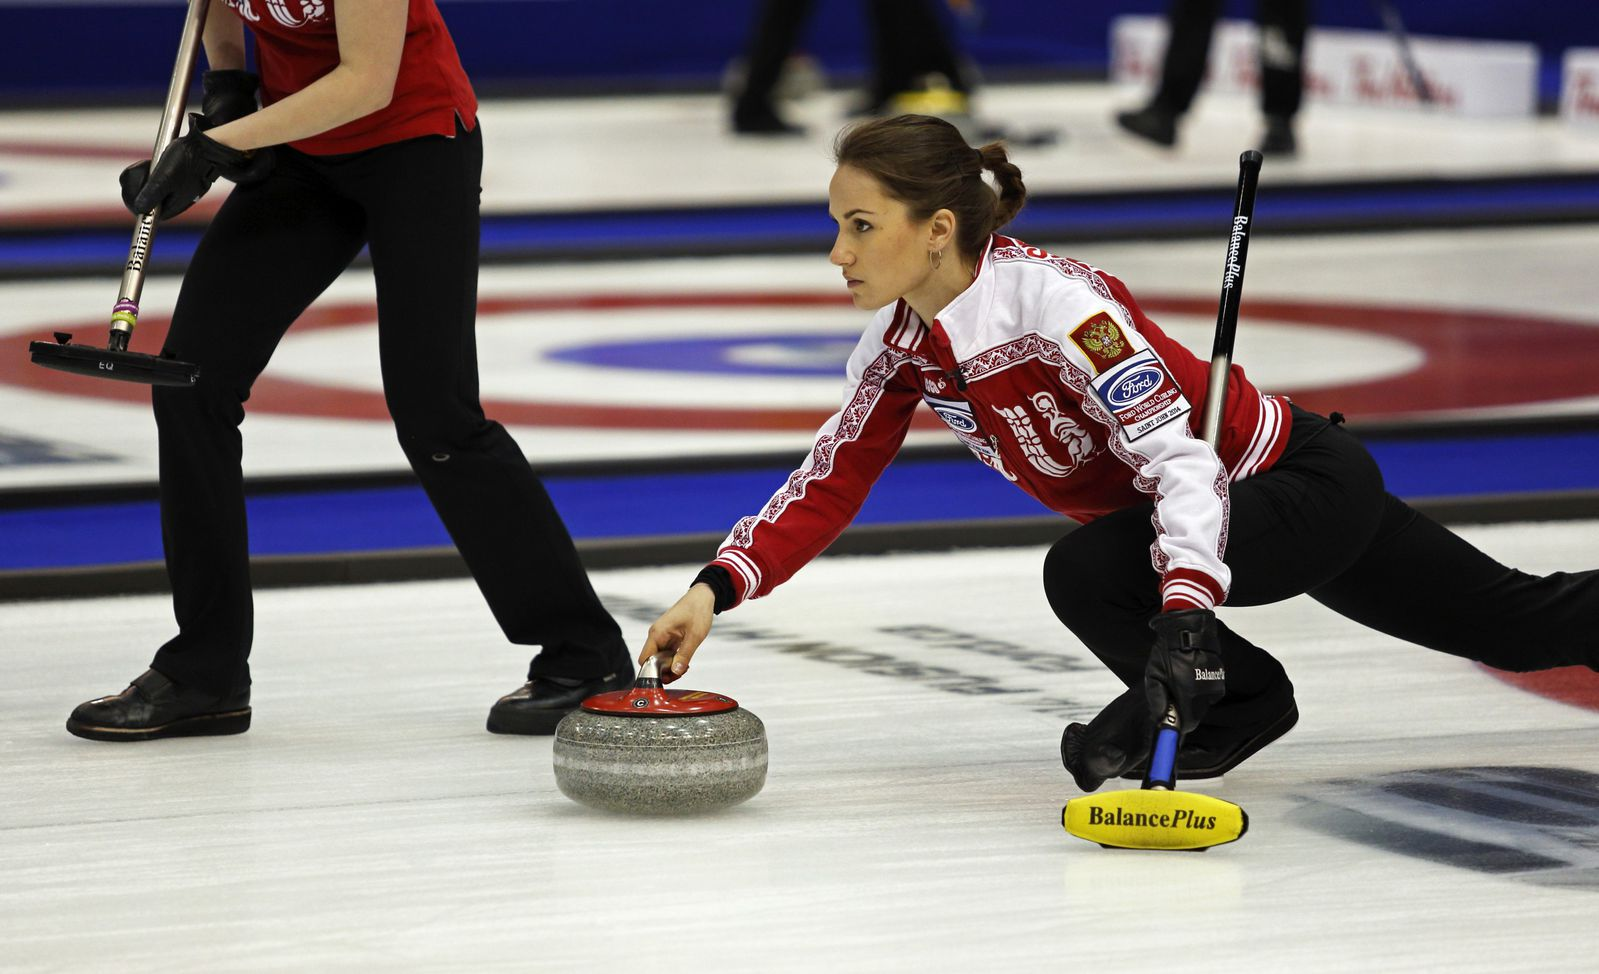 The World of Competitive Curling Has Its Very Own Scandal | Smart